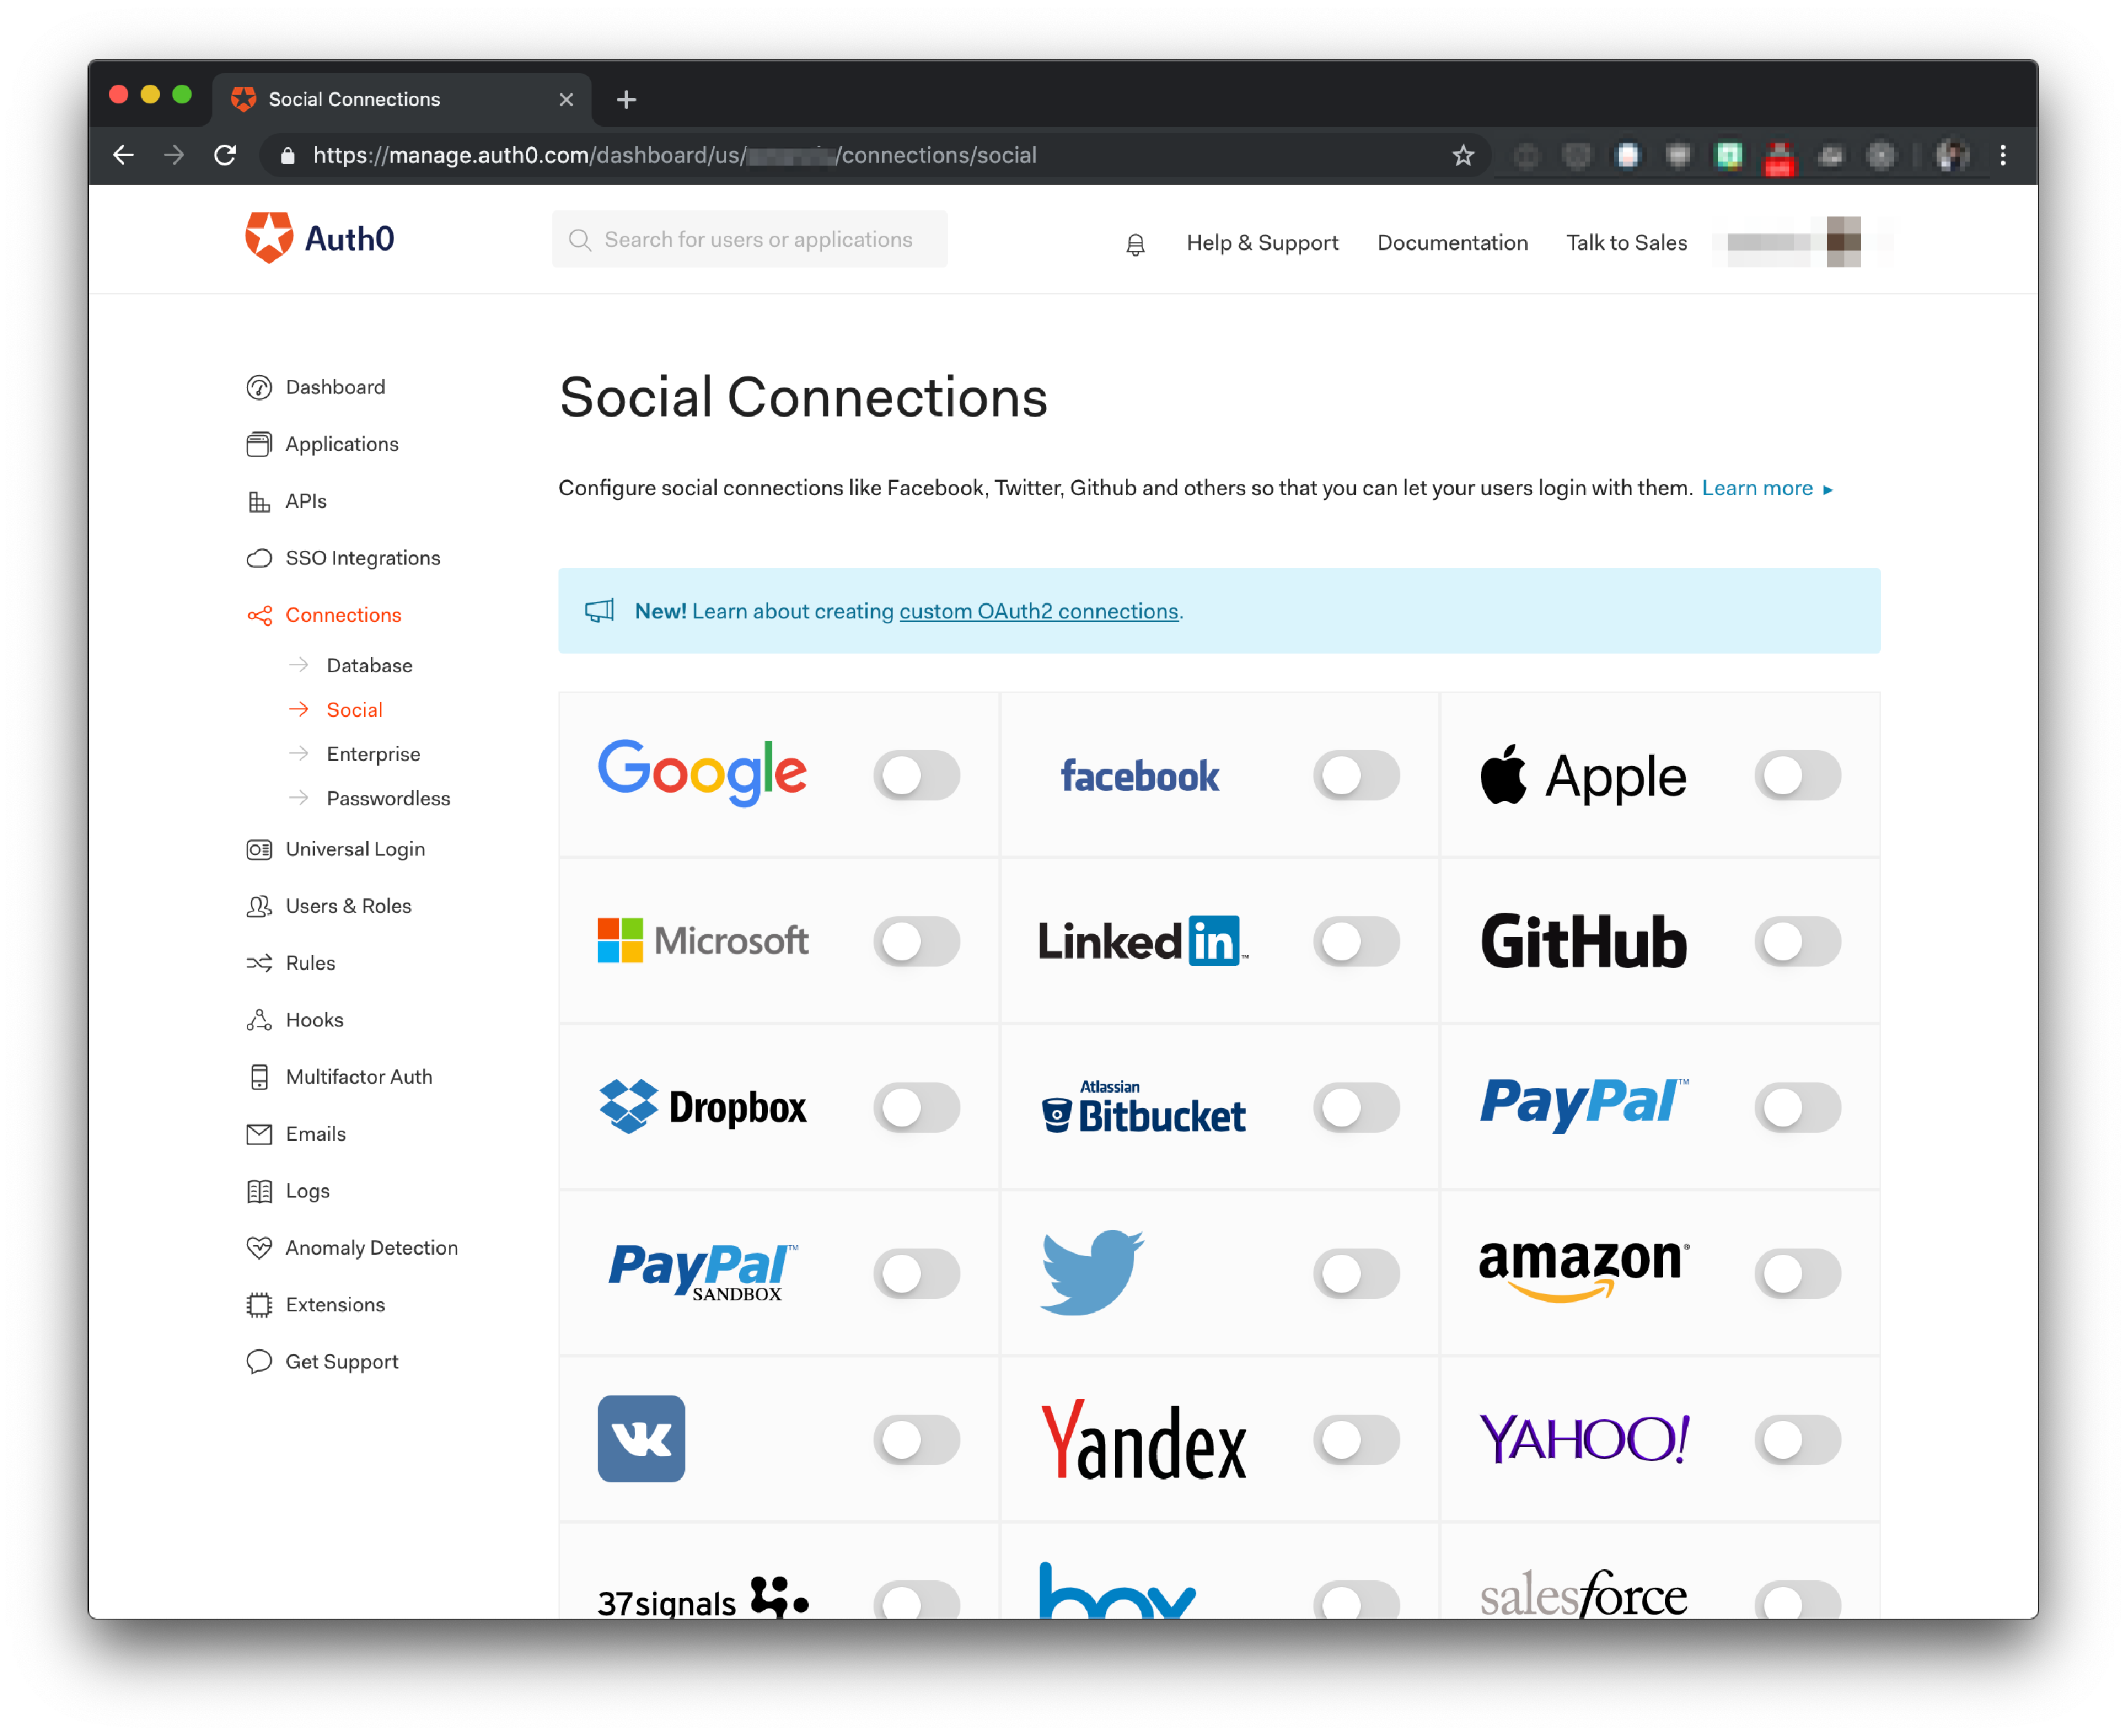 Auth0 Dashboard - Social Connections with Sign In with Apple included